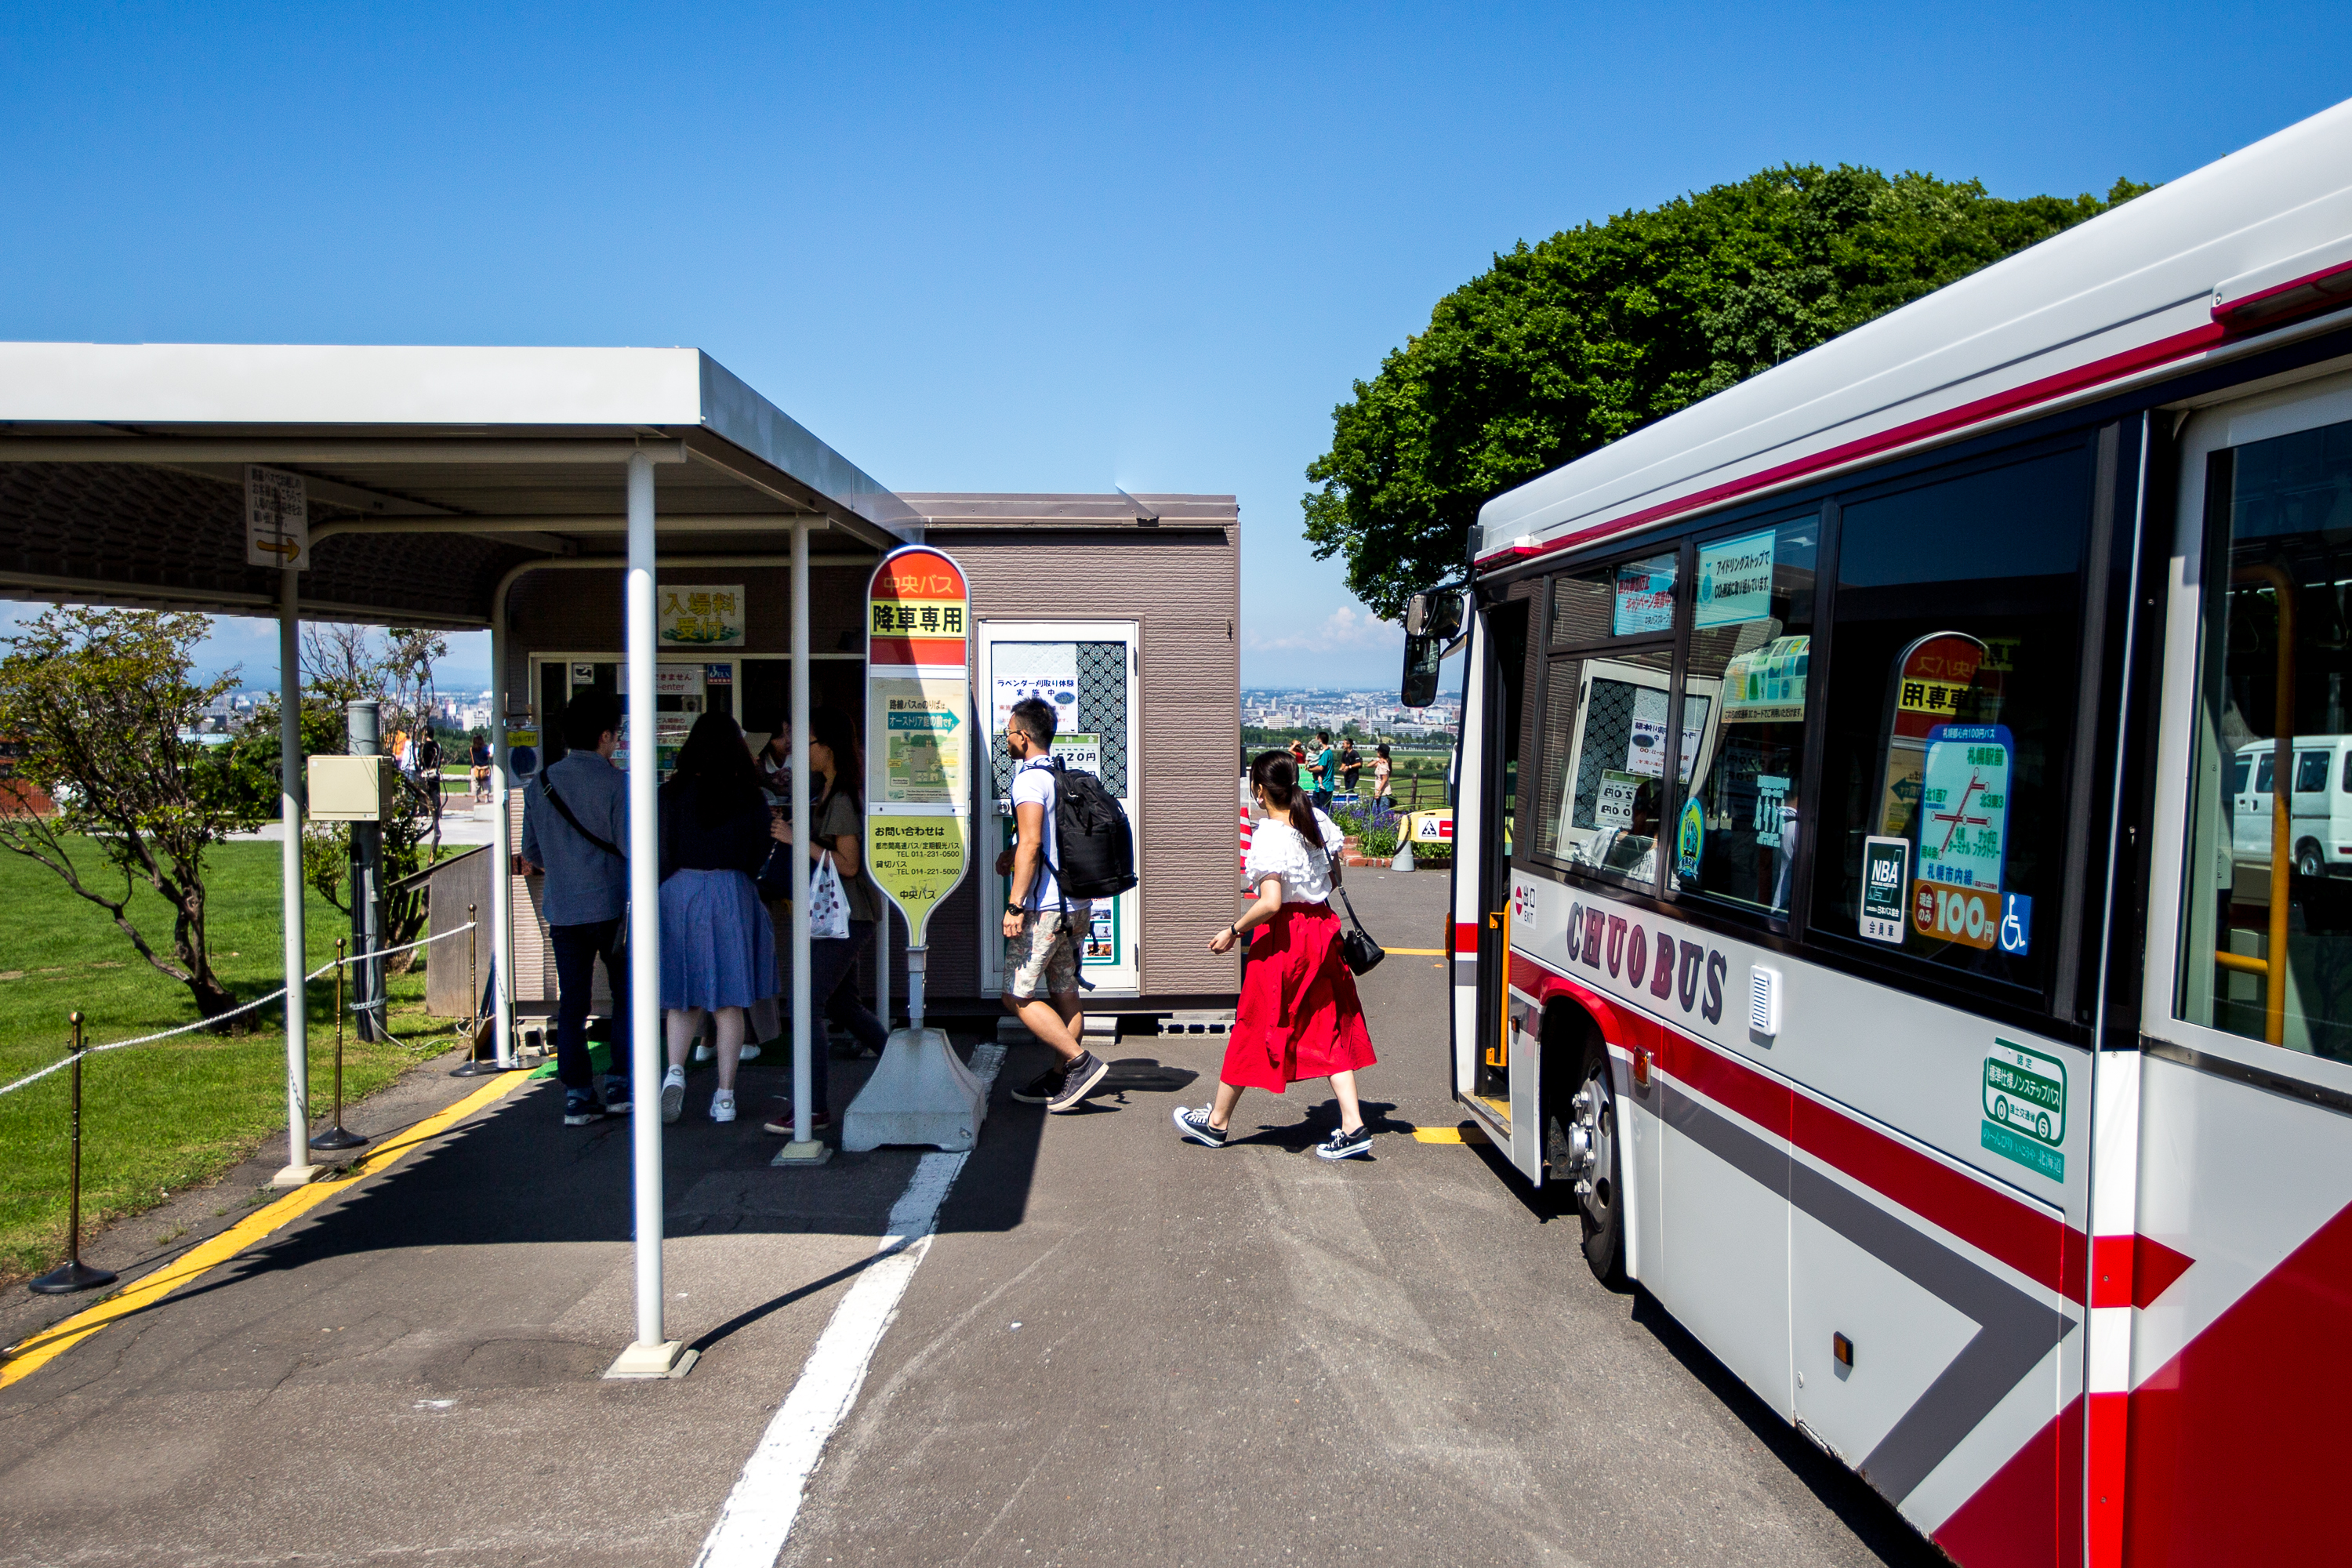 Buses at Hitsujigaoka Observation Hill